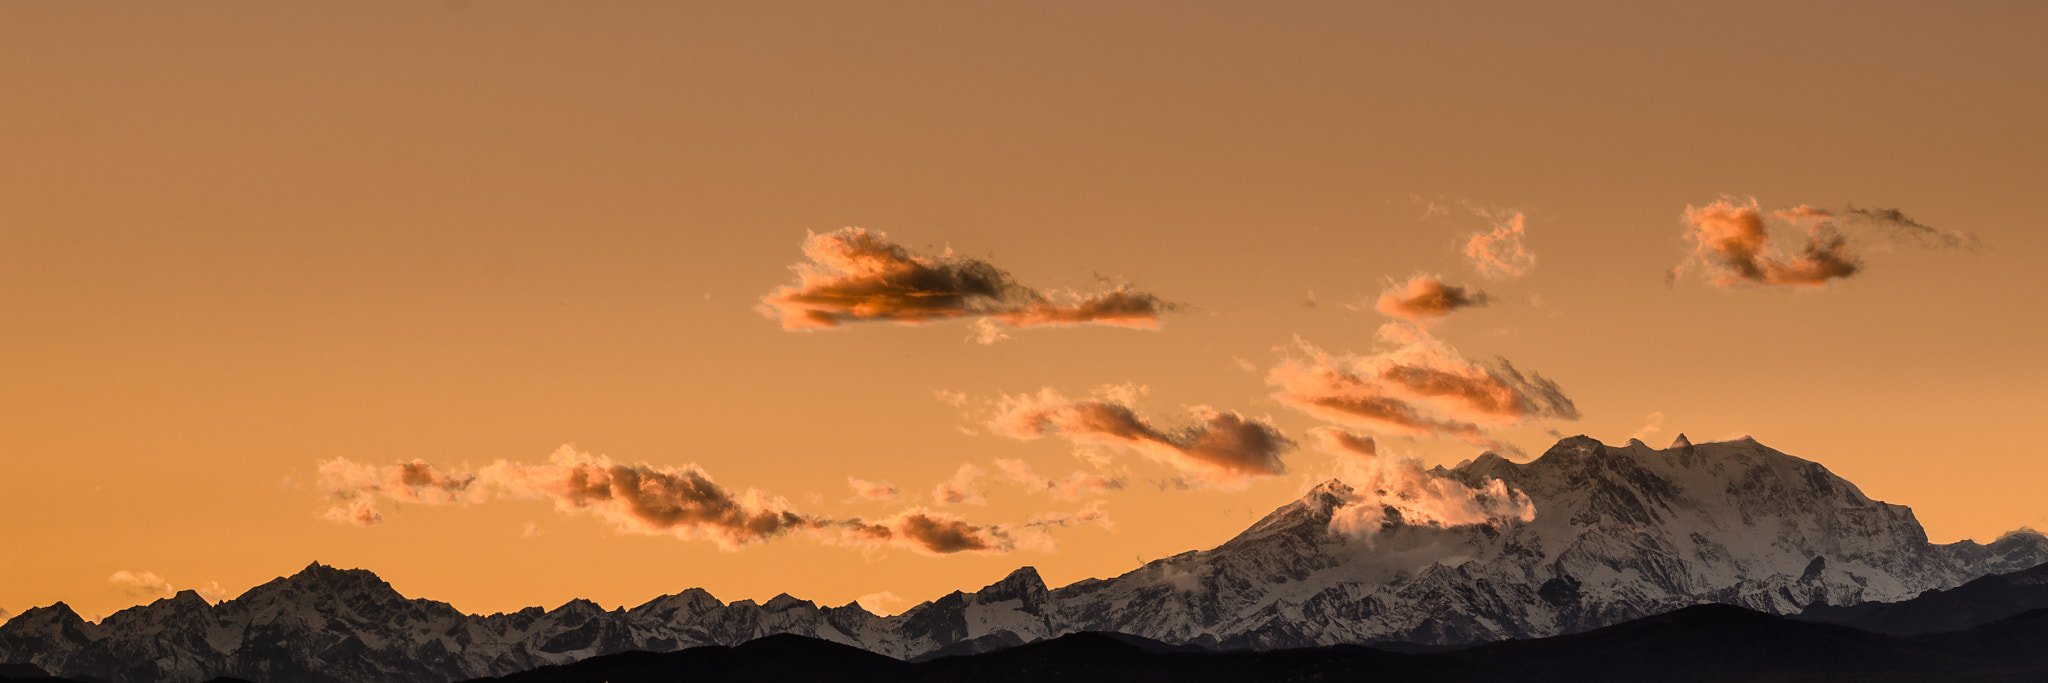 Photograph Monte Rosa by Luca Gabbana on 500px